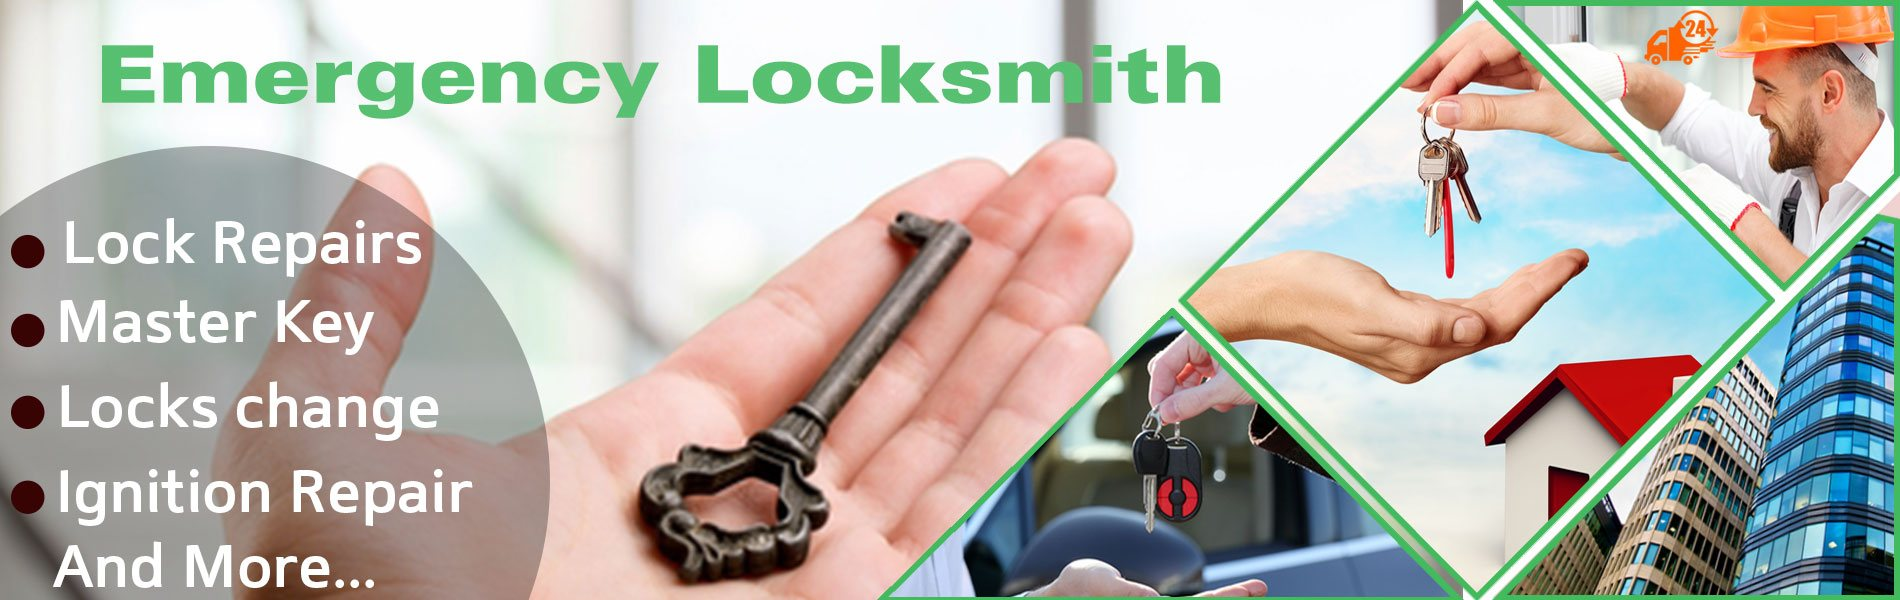 Lock Safe Services Germantown, MD 301-944-6626